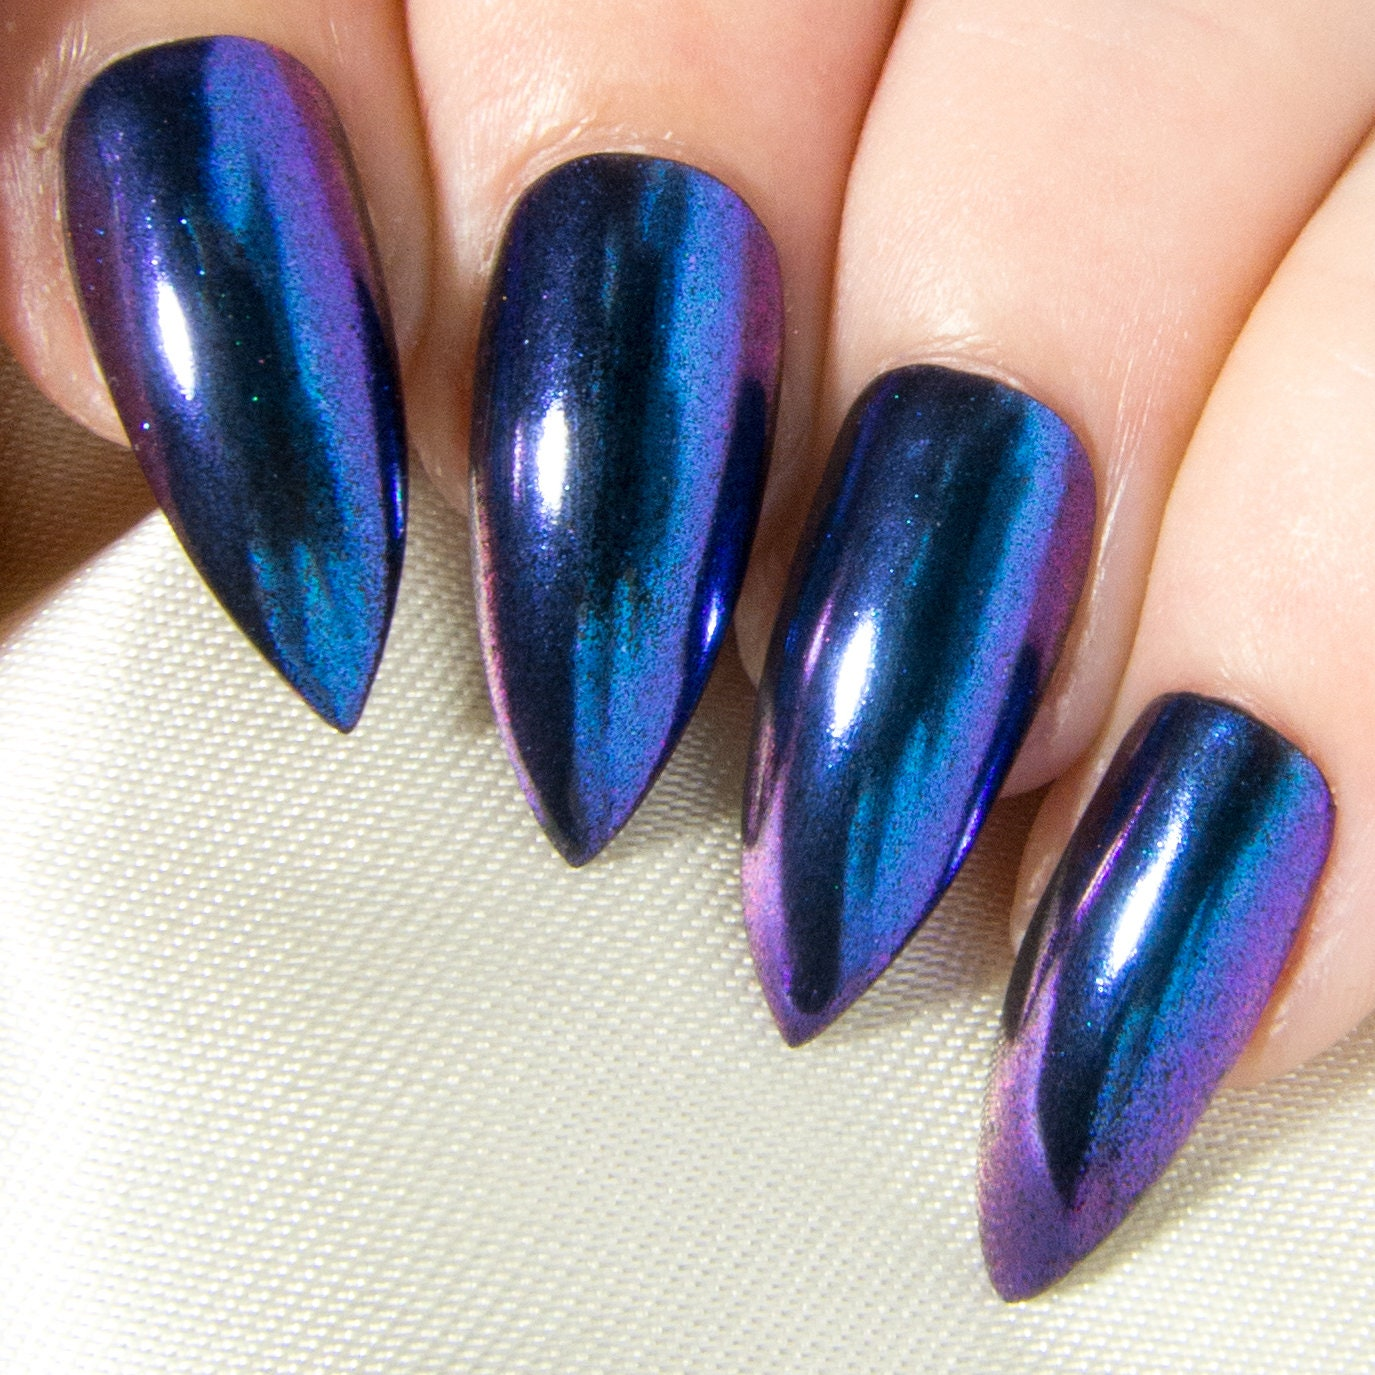 Fake Nails: Blue Chrome Fake Nails